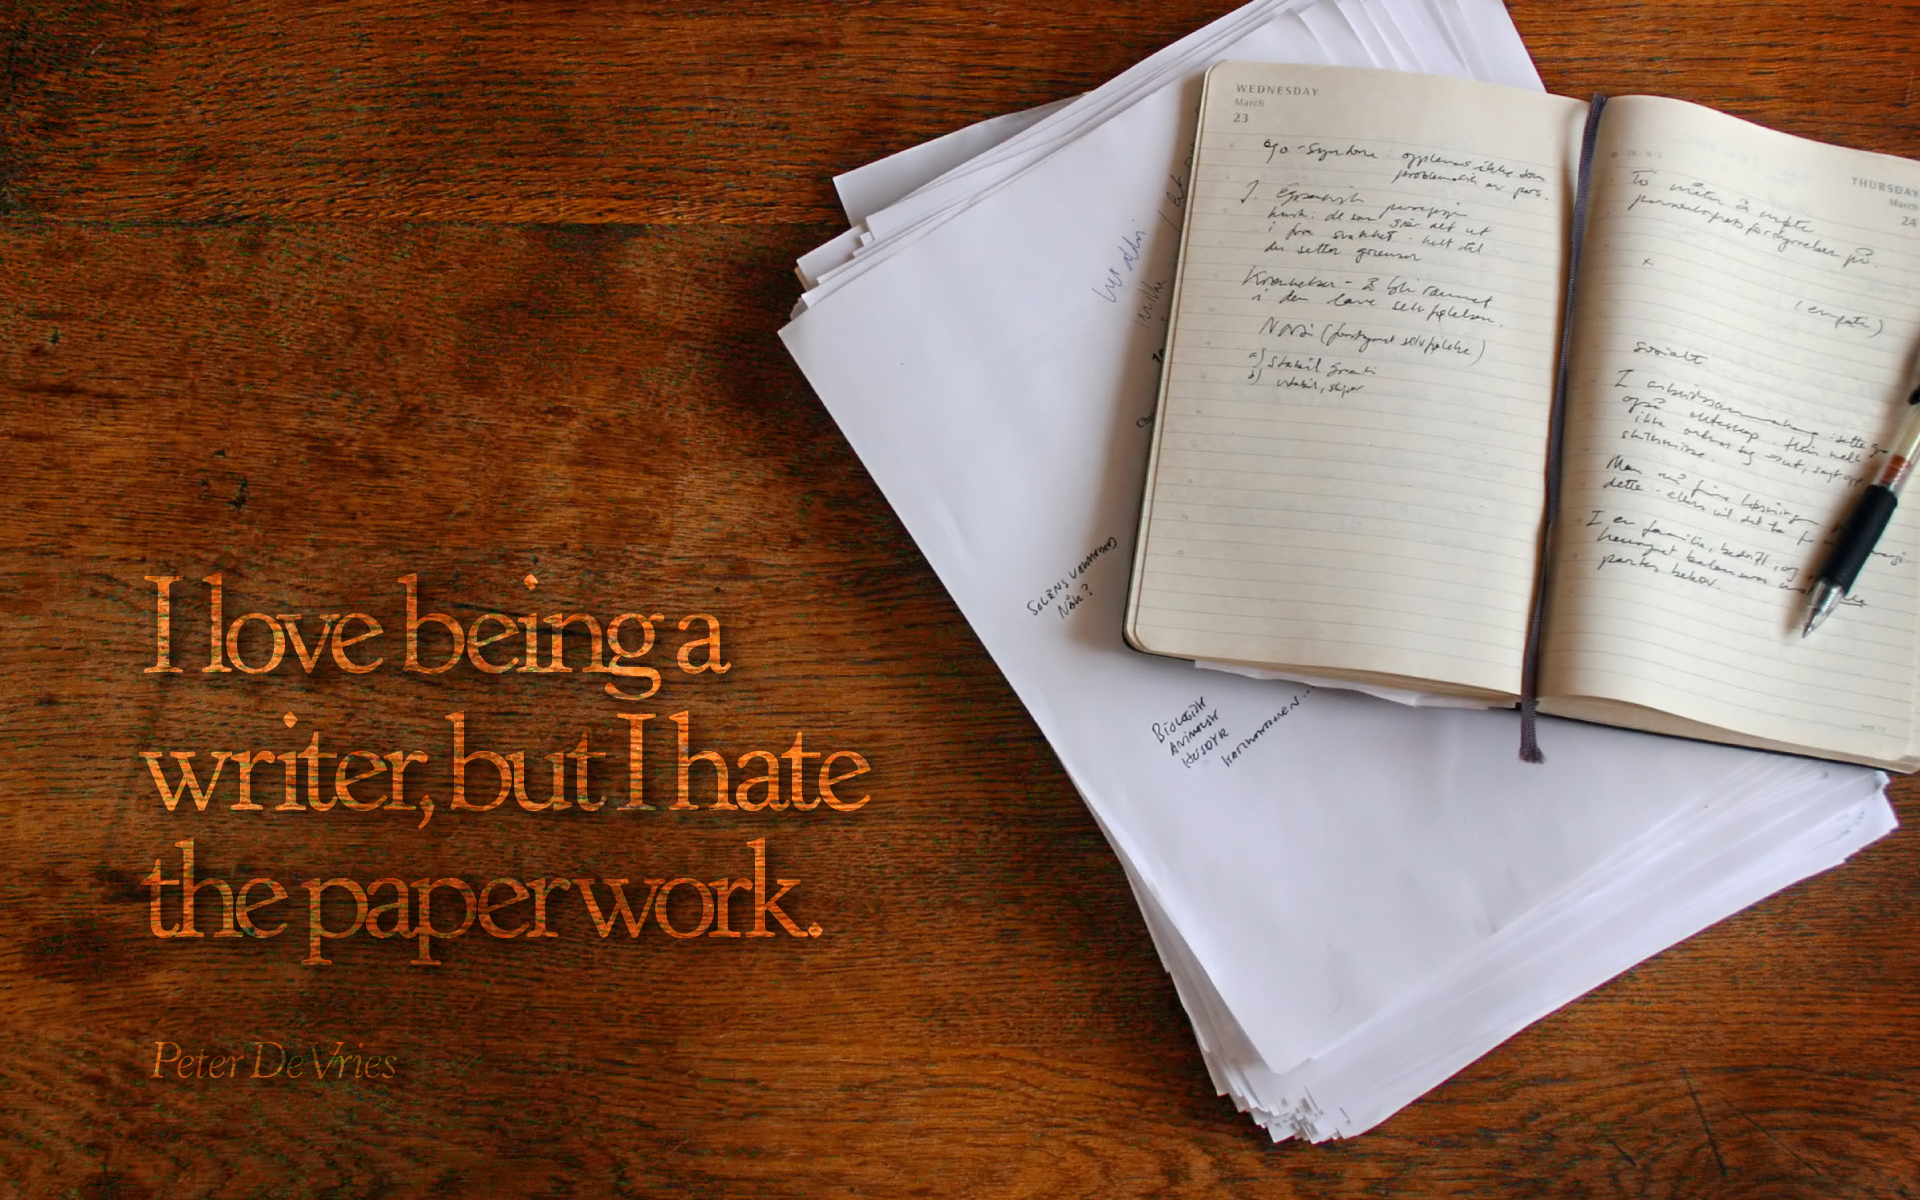 I love being a writer, but I hate the paperwork. — Peter De Vries [1920 x 1200]